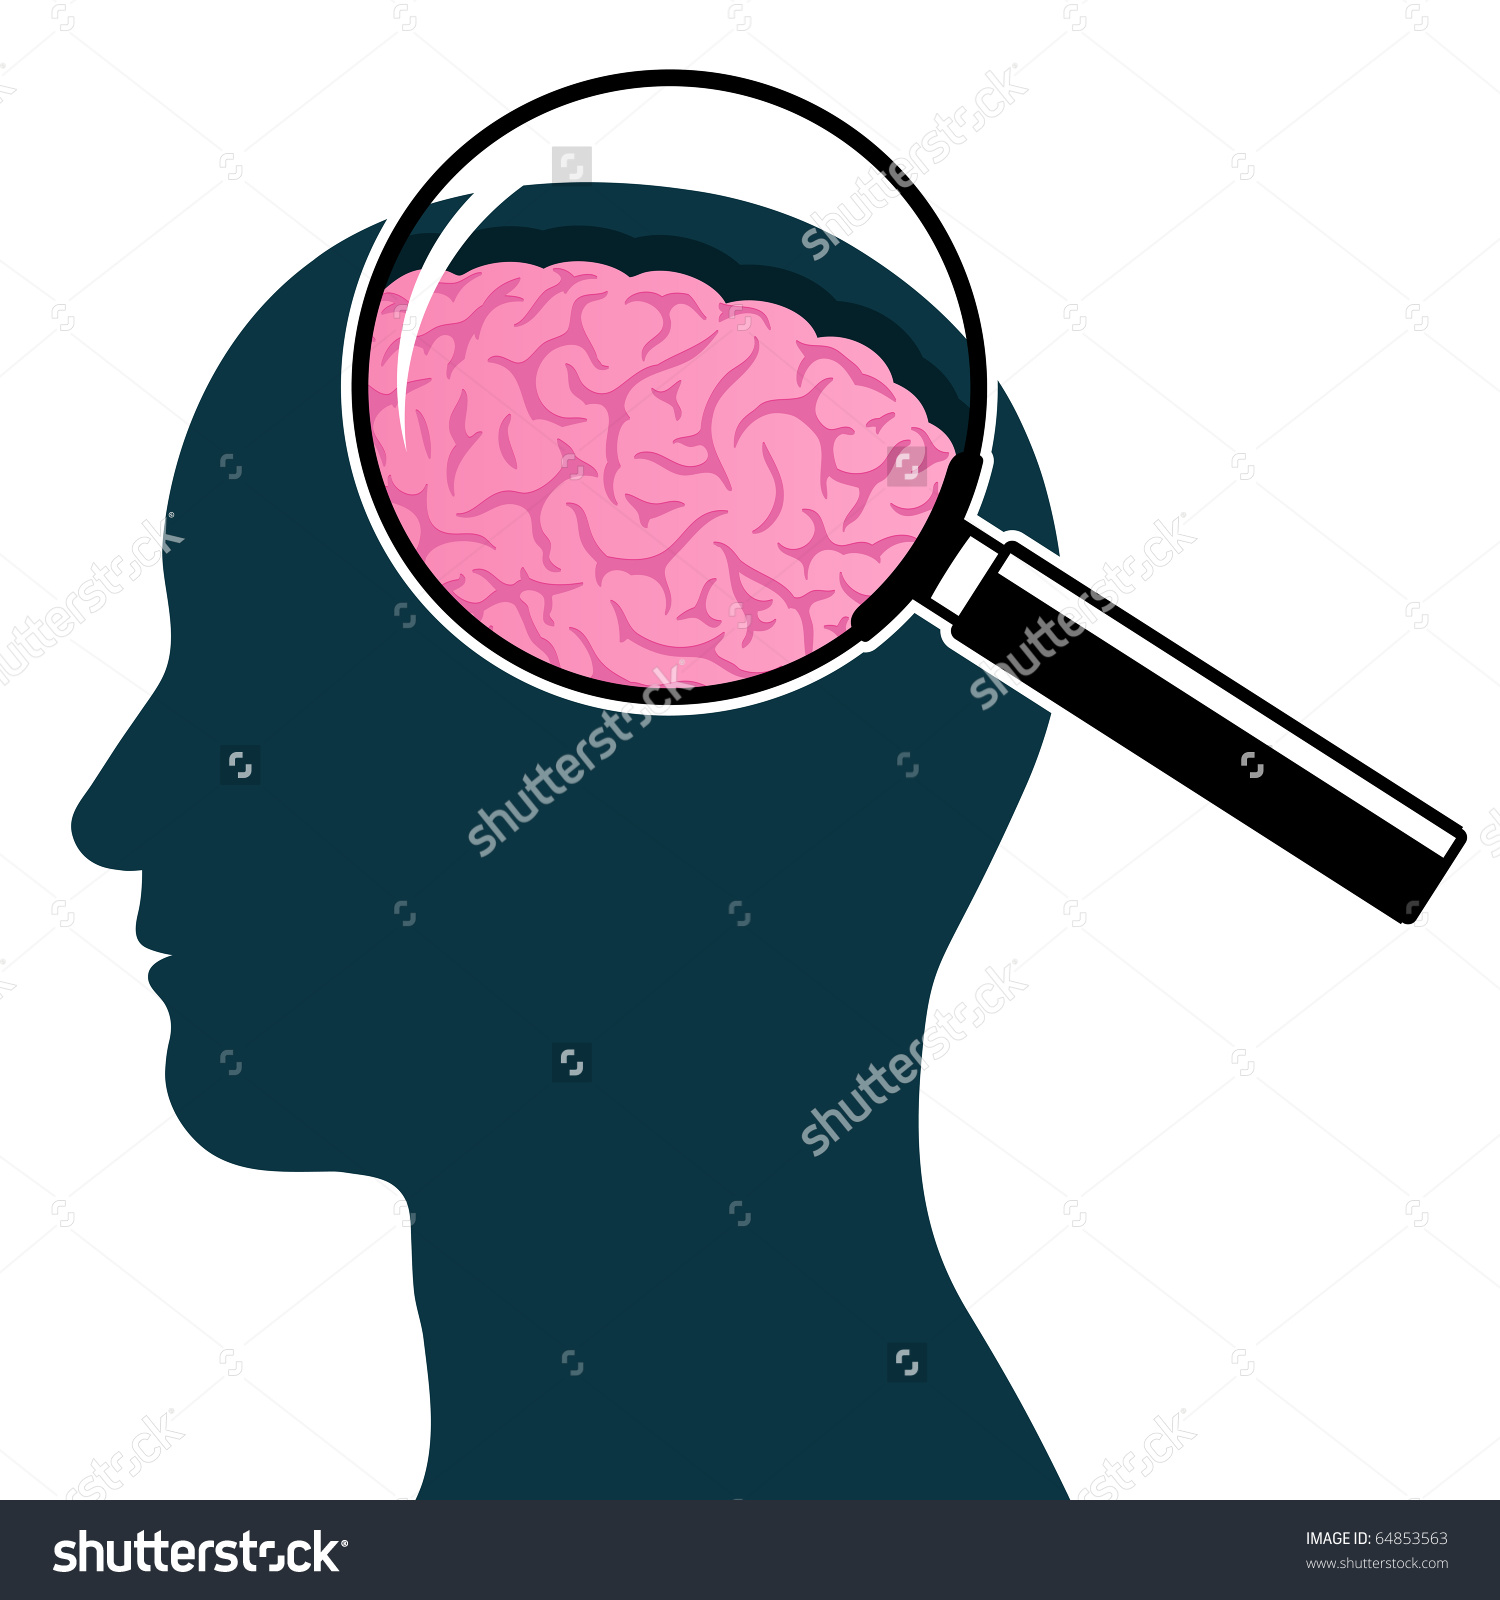 Magnifying clipart with arrow head svg transparent download Male Head Silhouette Magnifying Glass Brain Stock Illustration ... svg transparent download